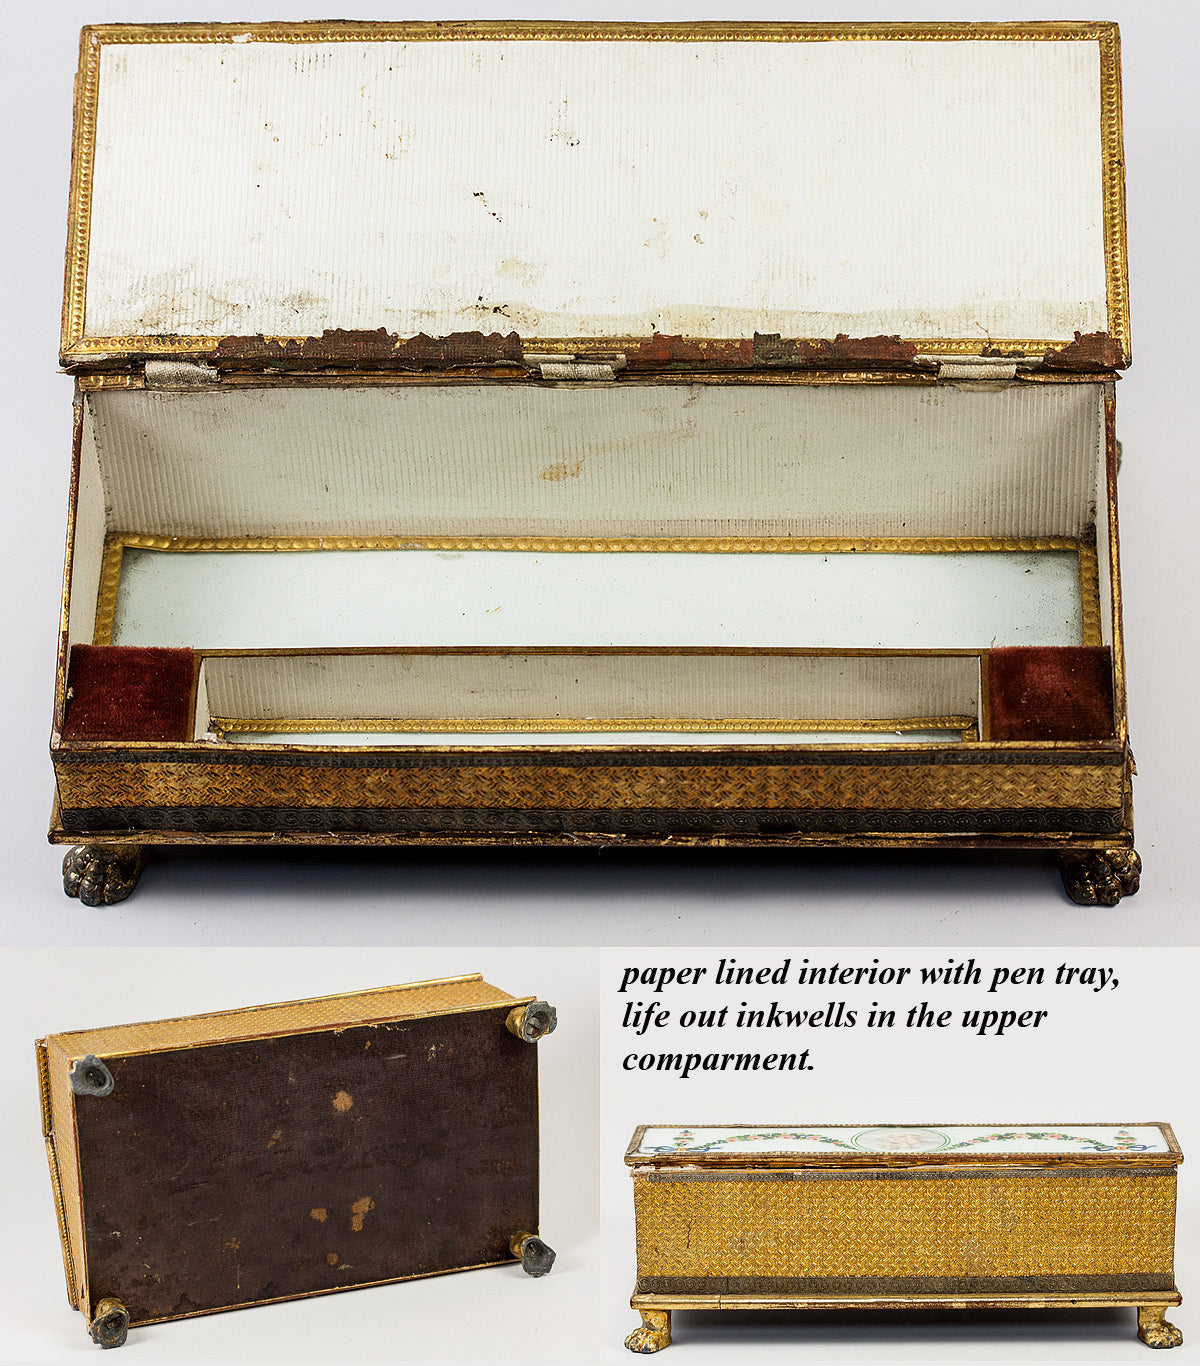 RARE Antique c.1700s French Eglomise Writer's Box, Double Inkwell, Chocolatier's Box